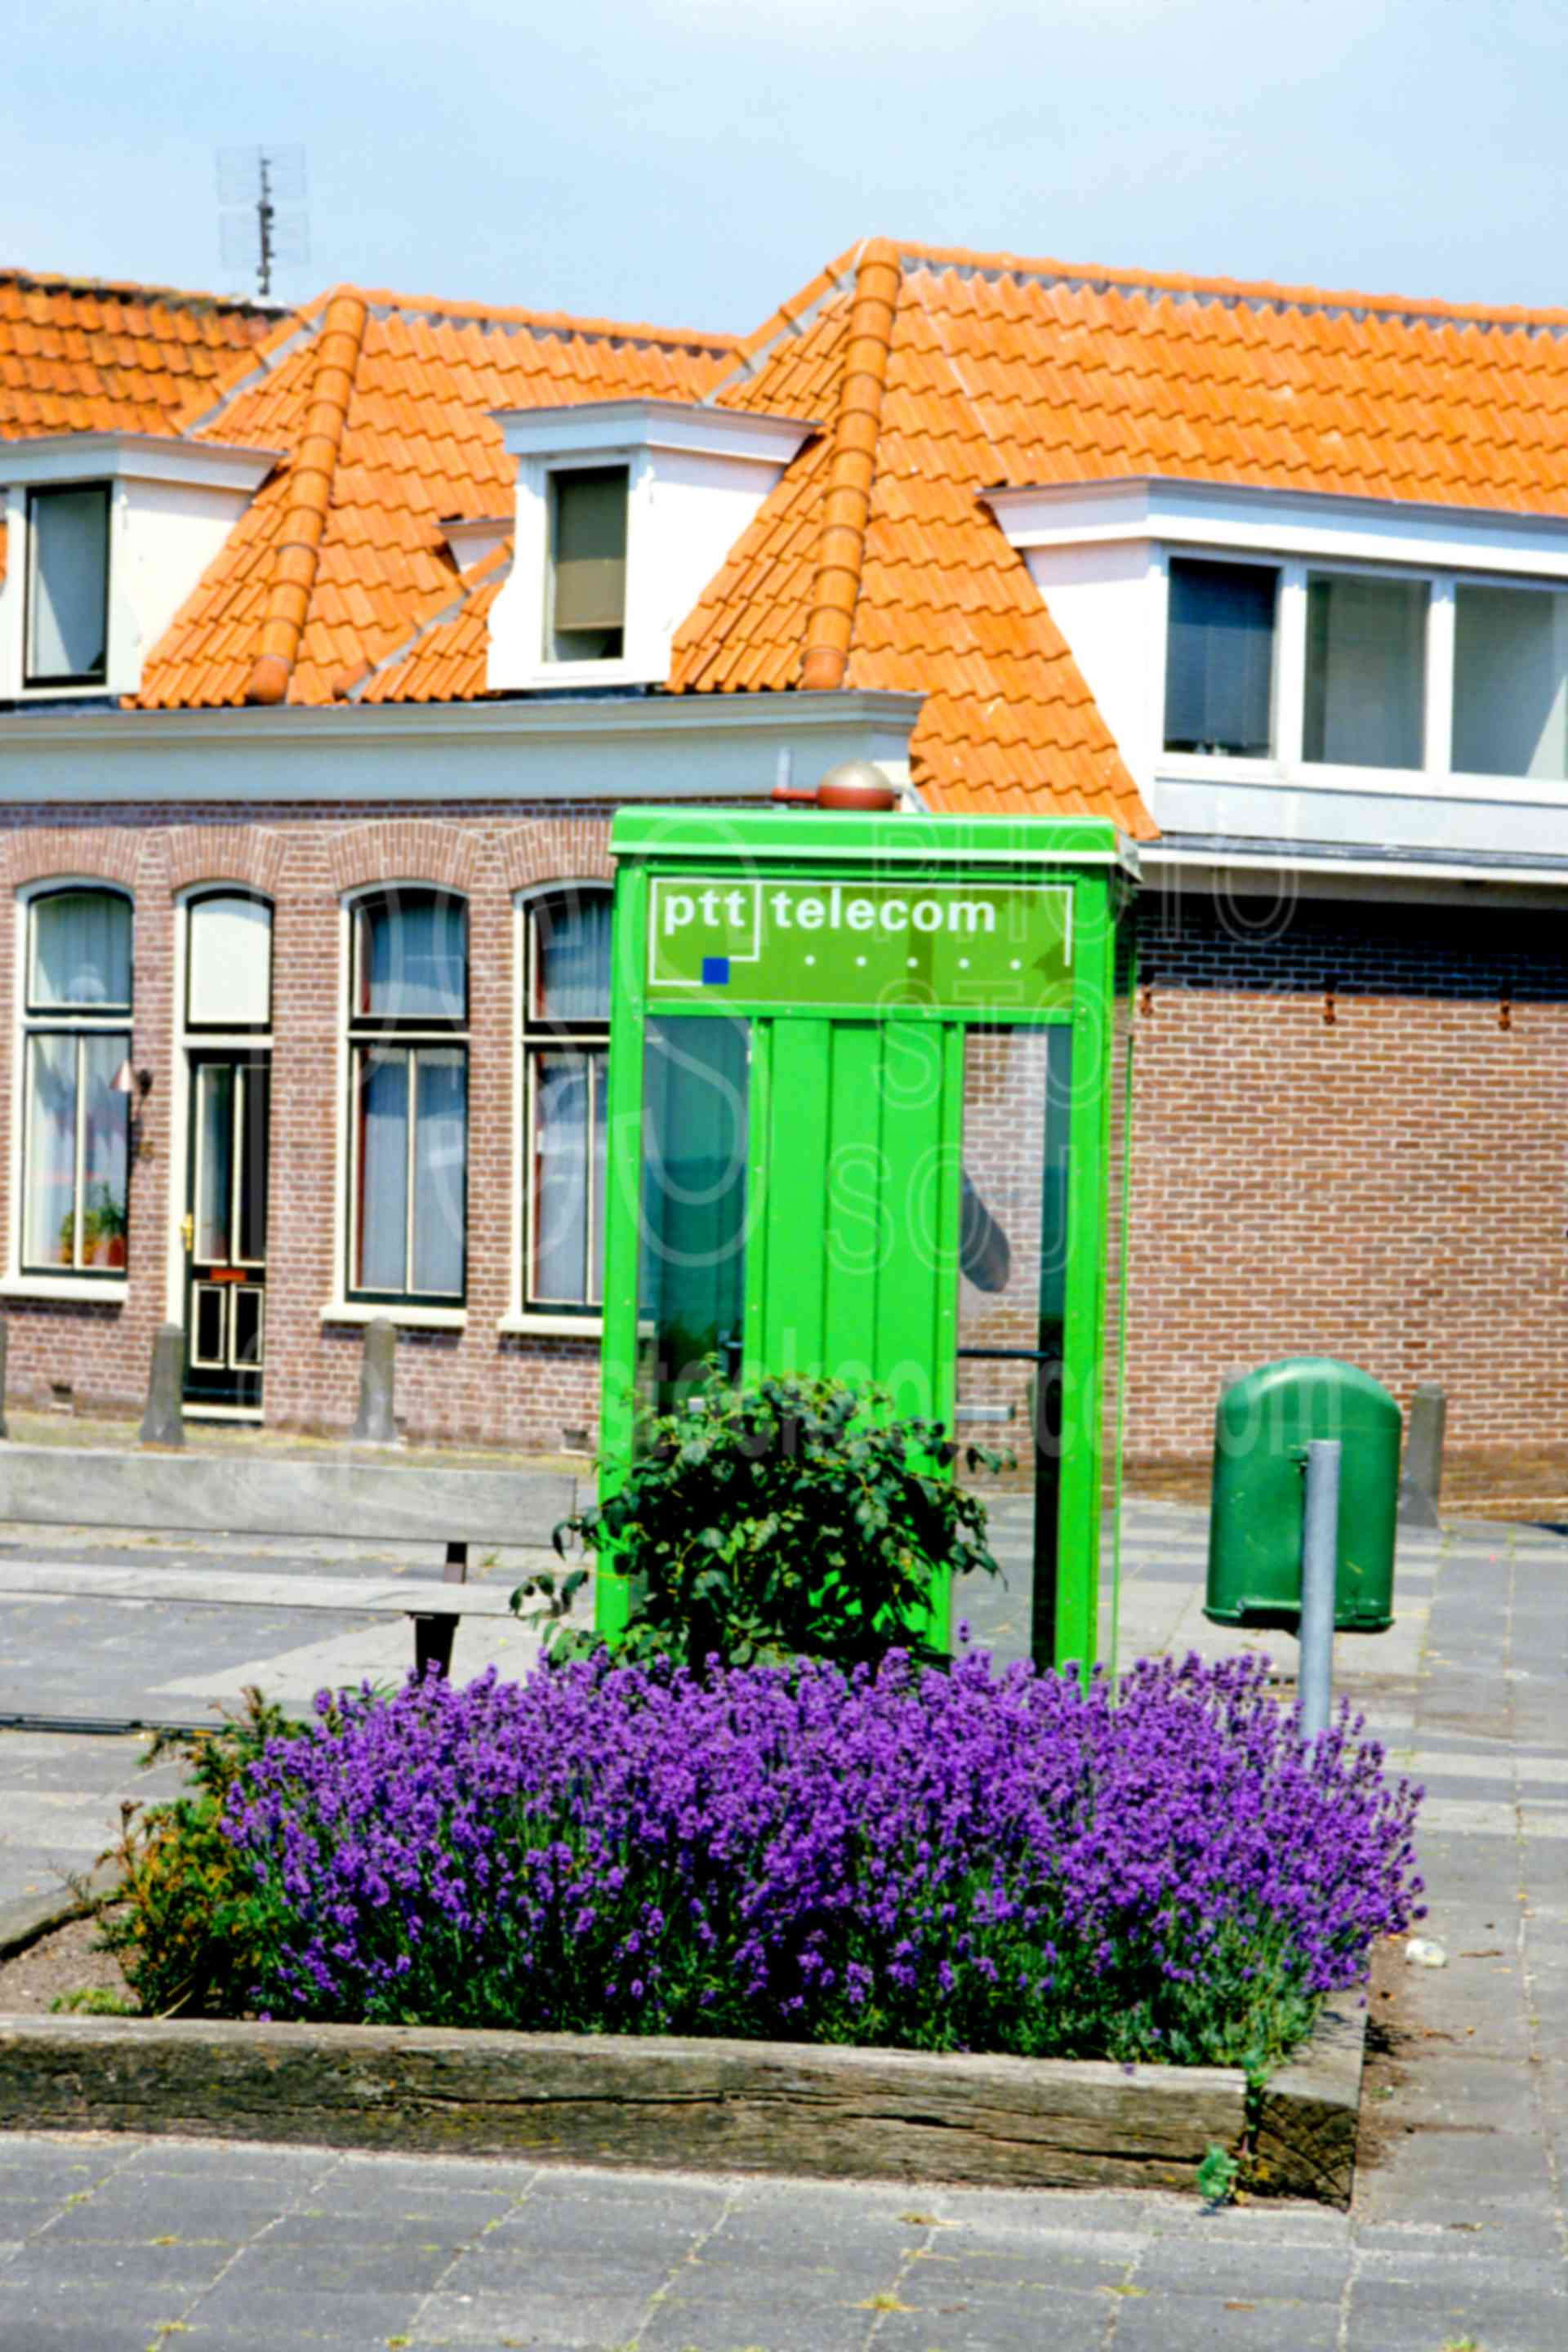 Dutch Phonebooth,dutch phone booth,europe,flower,holland,phone booth,plant,plants